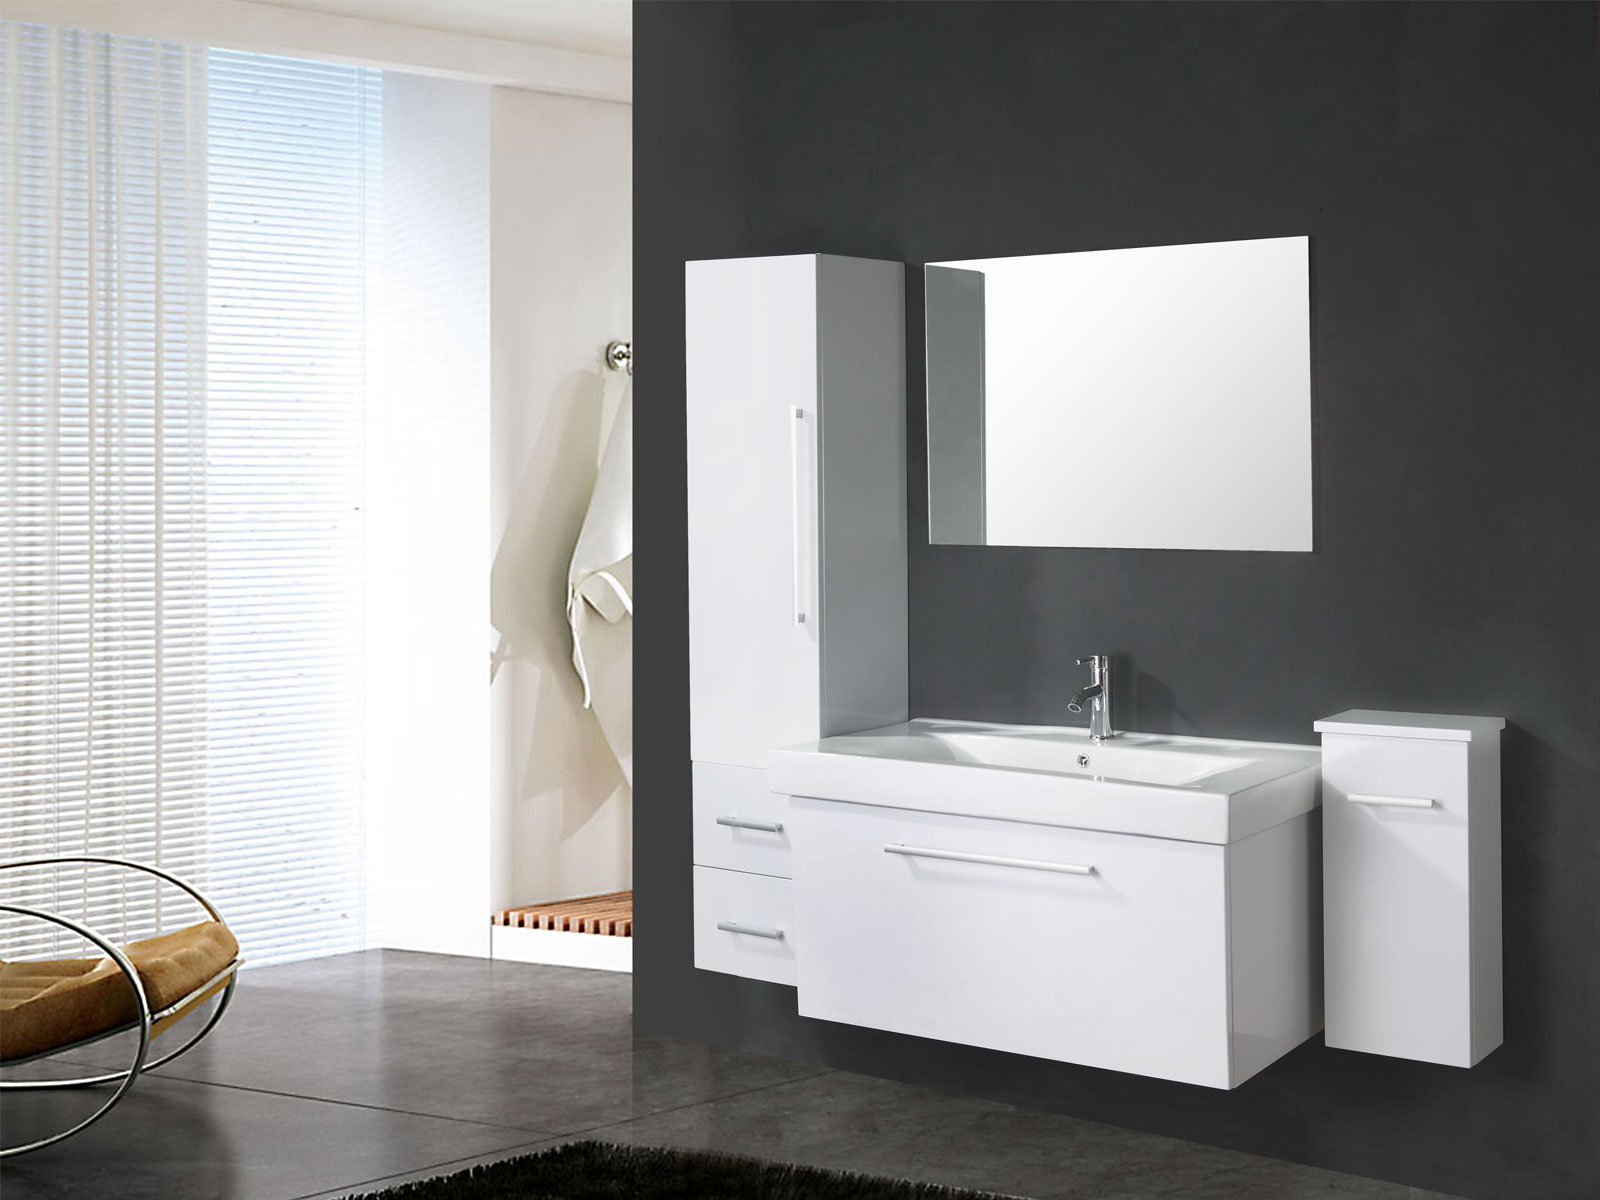 white london meuble salle de bain 100 cm lavabo e colonne compris. Black Bedroom Furniture Sets. Home Design Ideas